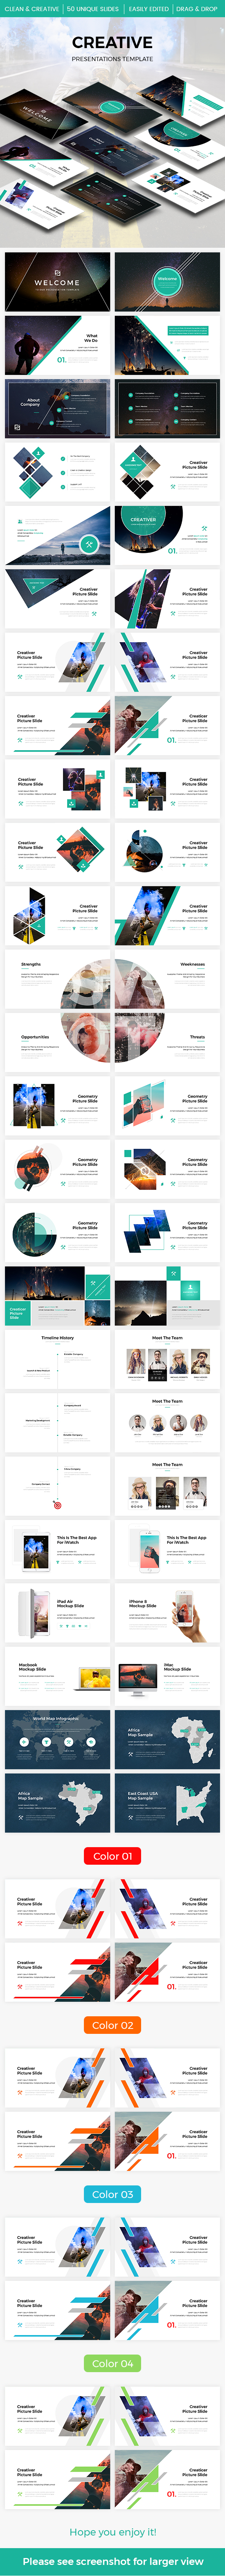 Creative 2.0 Google Slides Template 2017 - Google Slides Presentation Templates